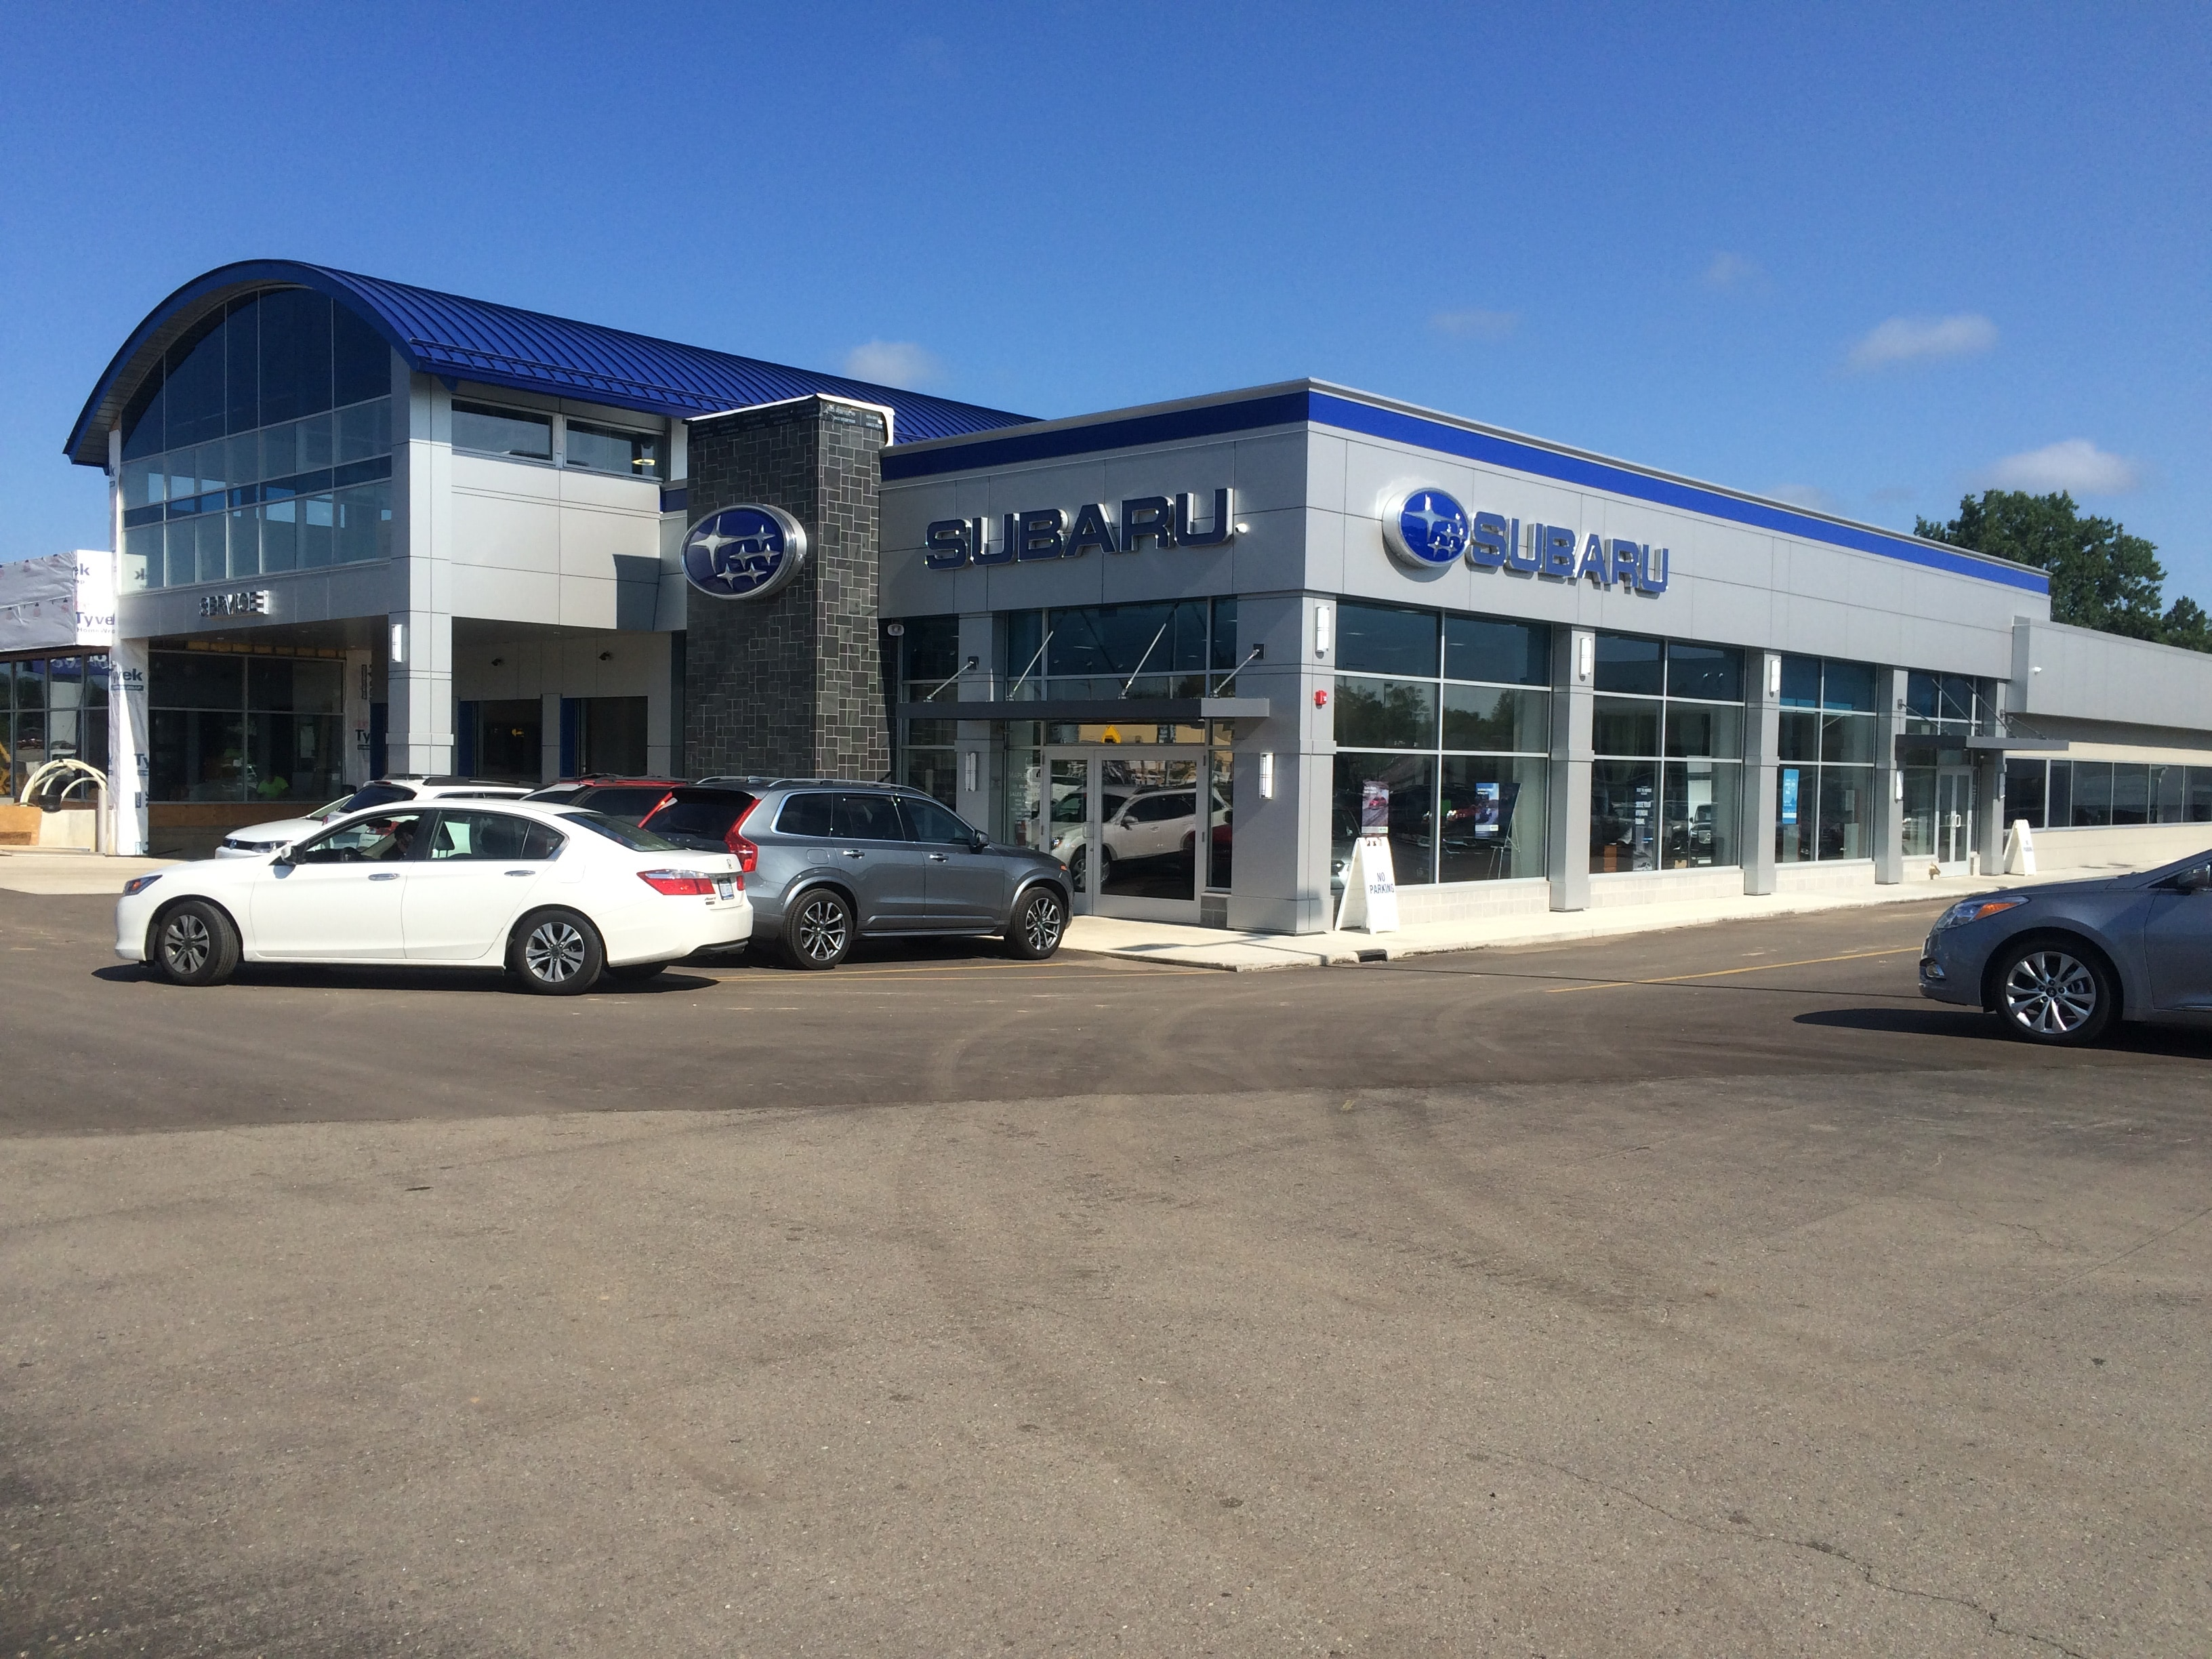 Our Subaru Dealership Maple Hill Auto Group Kalamazoo Mi